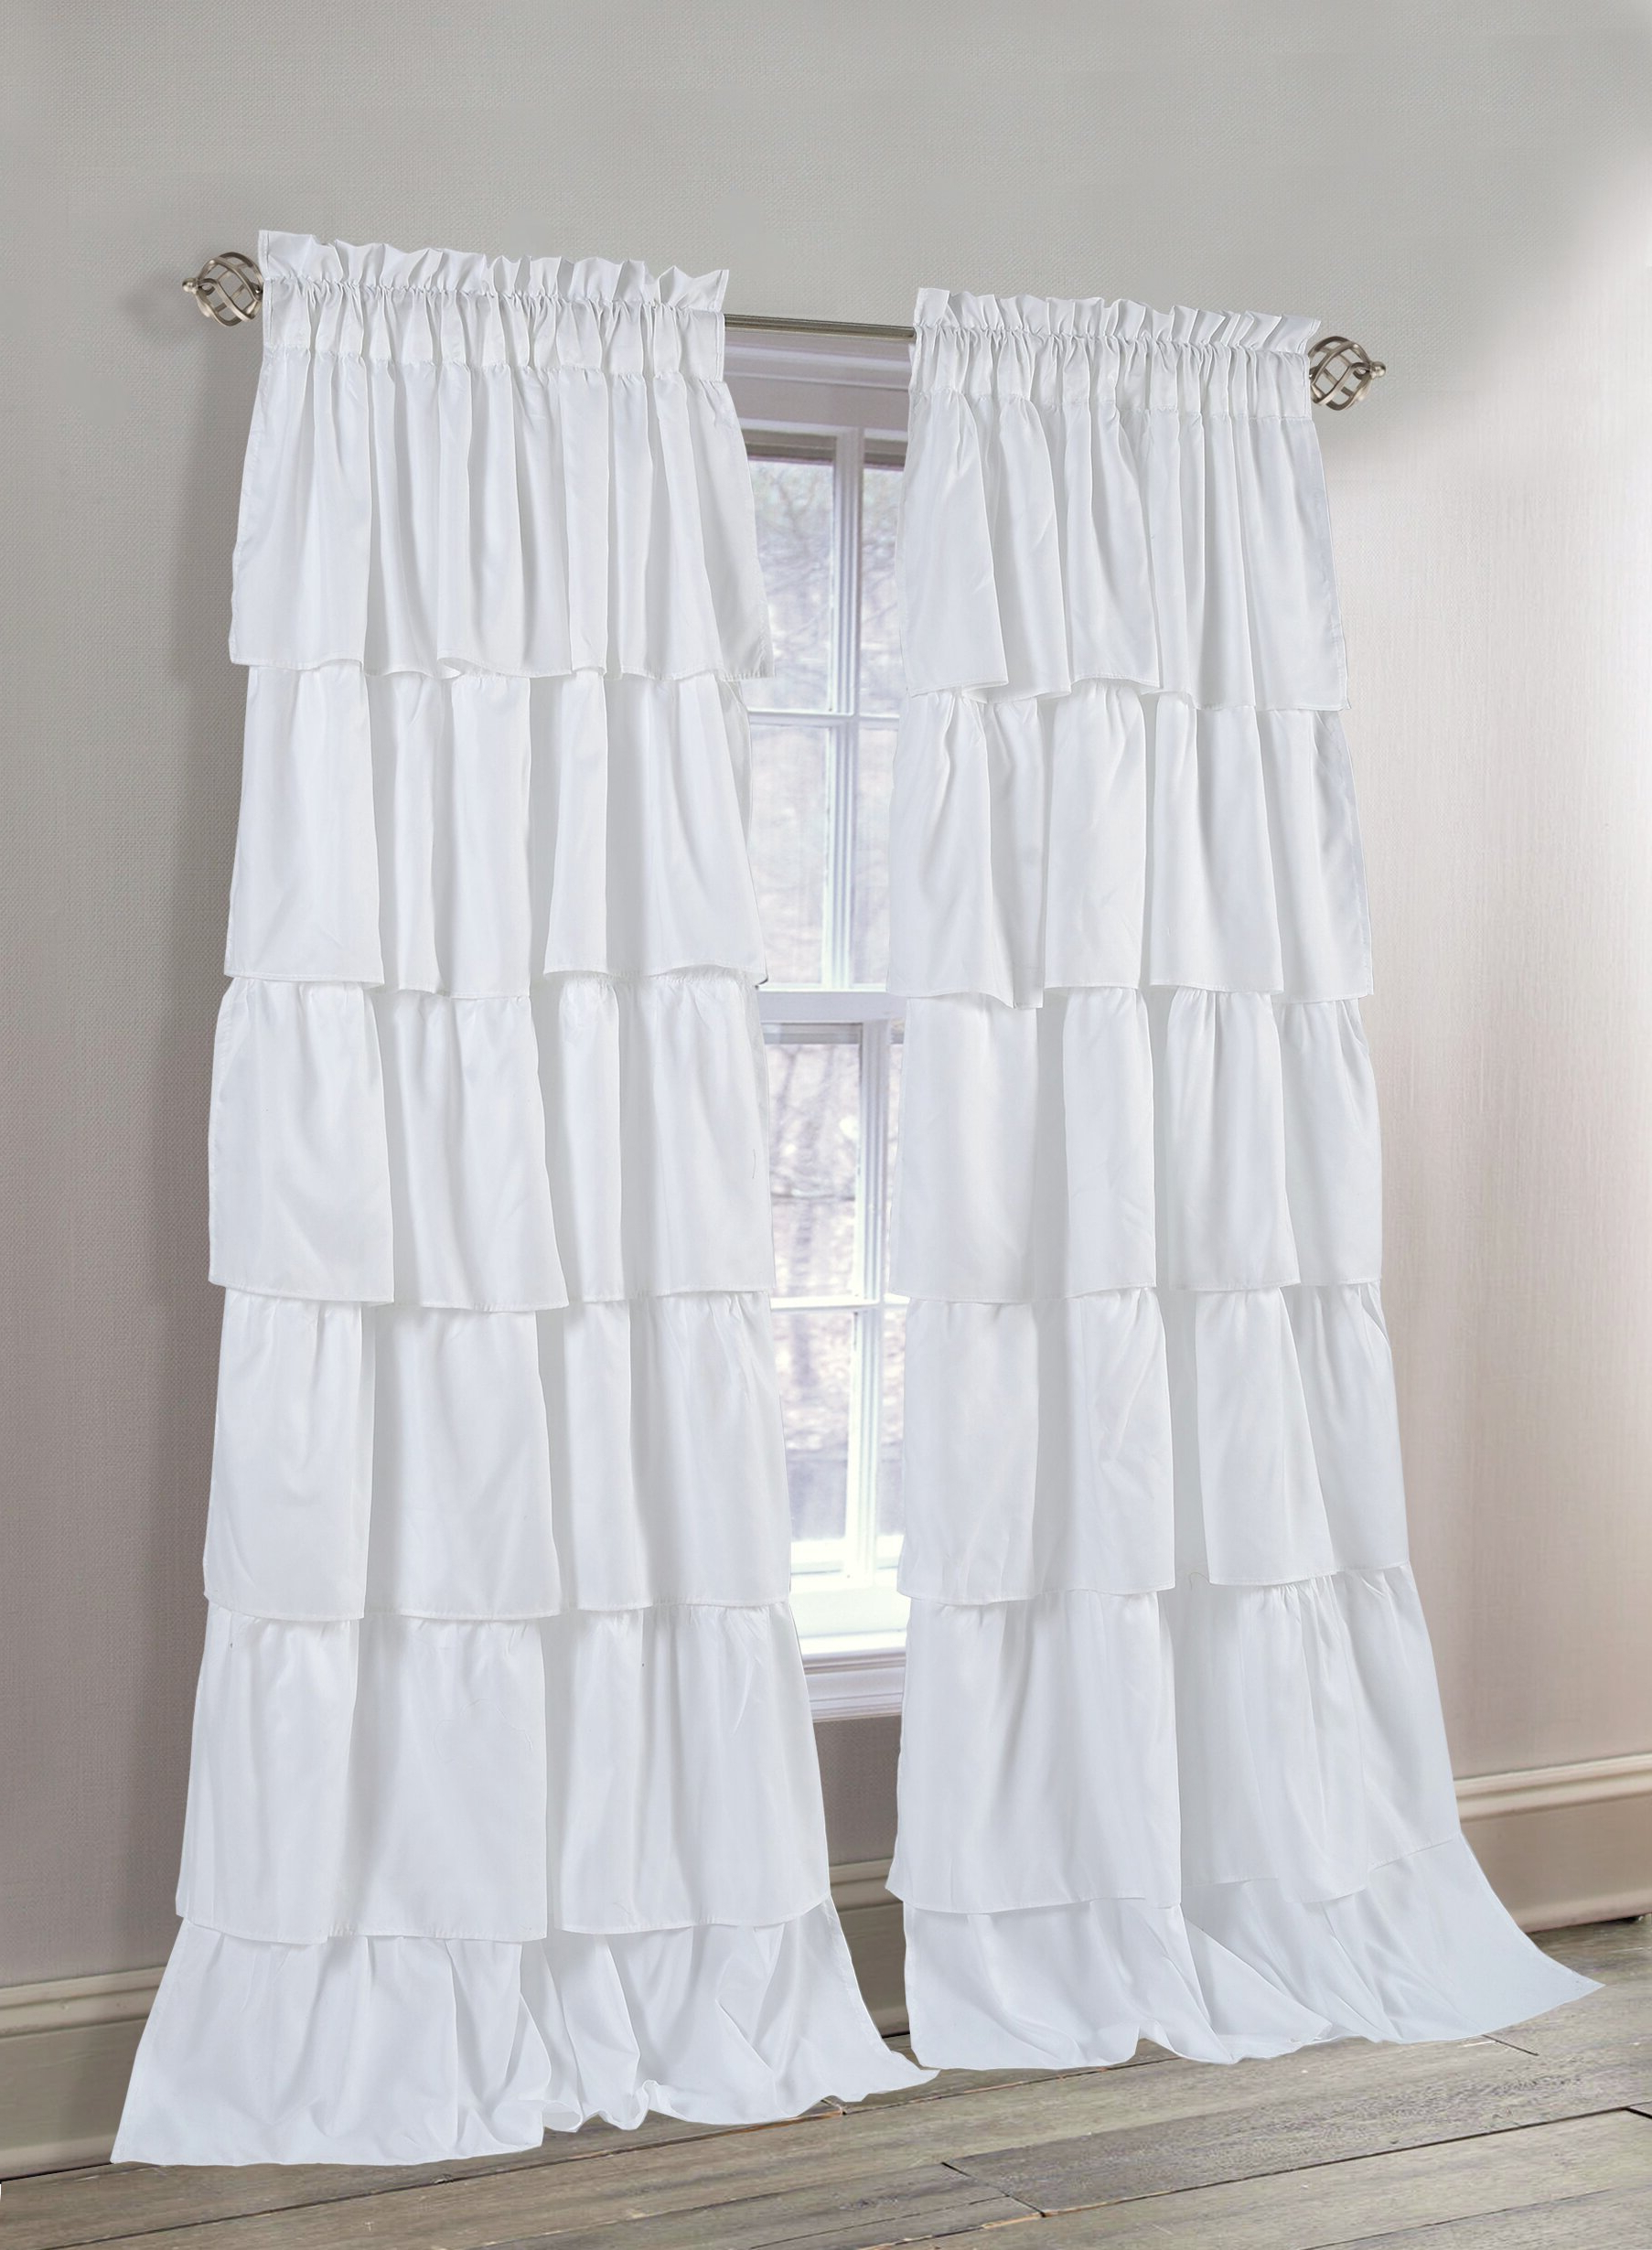 Luxury Collection Cranston Sheer Curtain Panel Pairs With Regard To Best And Newest Azariah Solid Semi Sheer Rod Pocket Curtain Panels (Gallery 14 of 20)